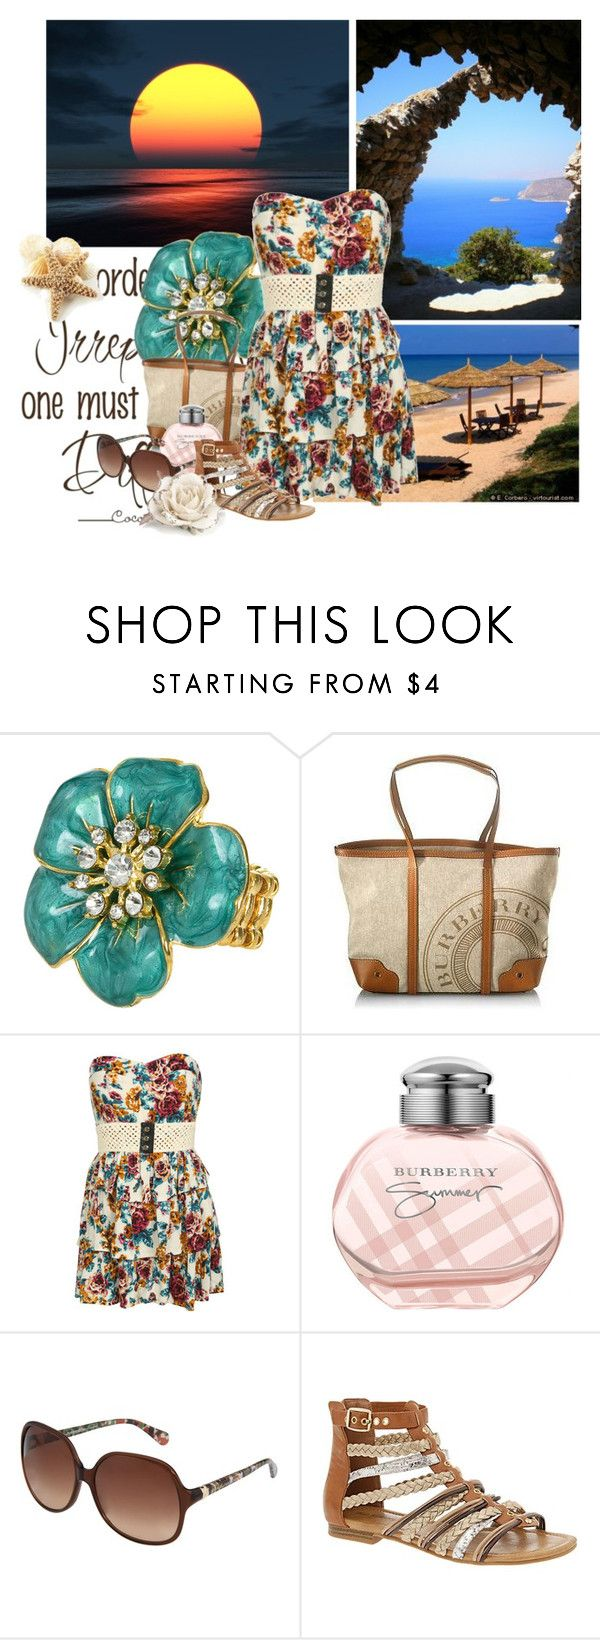 """""""Sunset On the Ocean"""" by cdolphina2 ❤ liked on Polyvore featuring Chanel, Wet Seal, Burberry, Diane Von Furstenberg, Call it SPRING and Monsoon"""